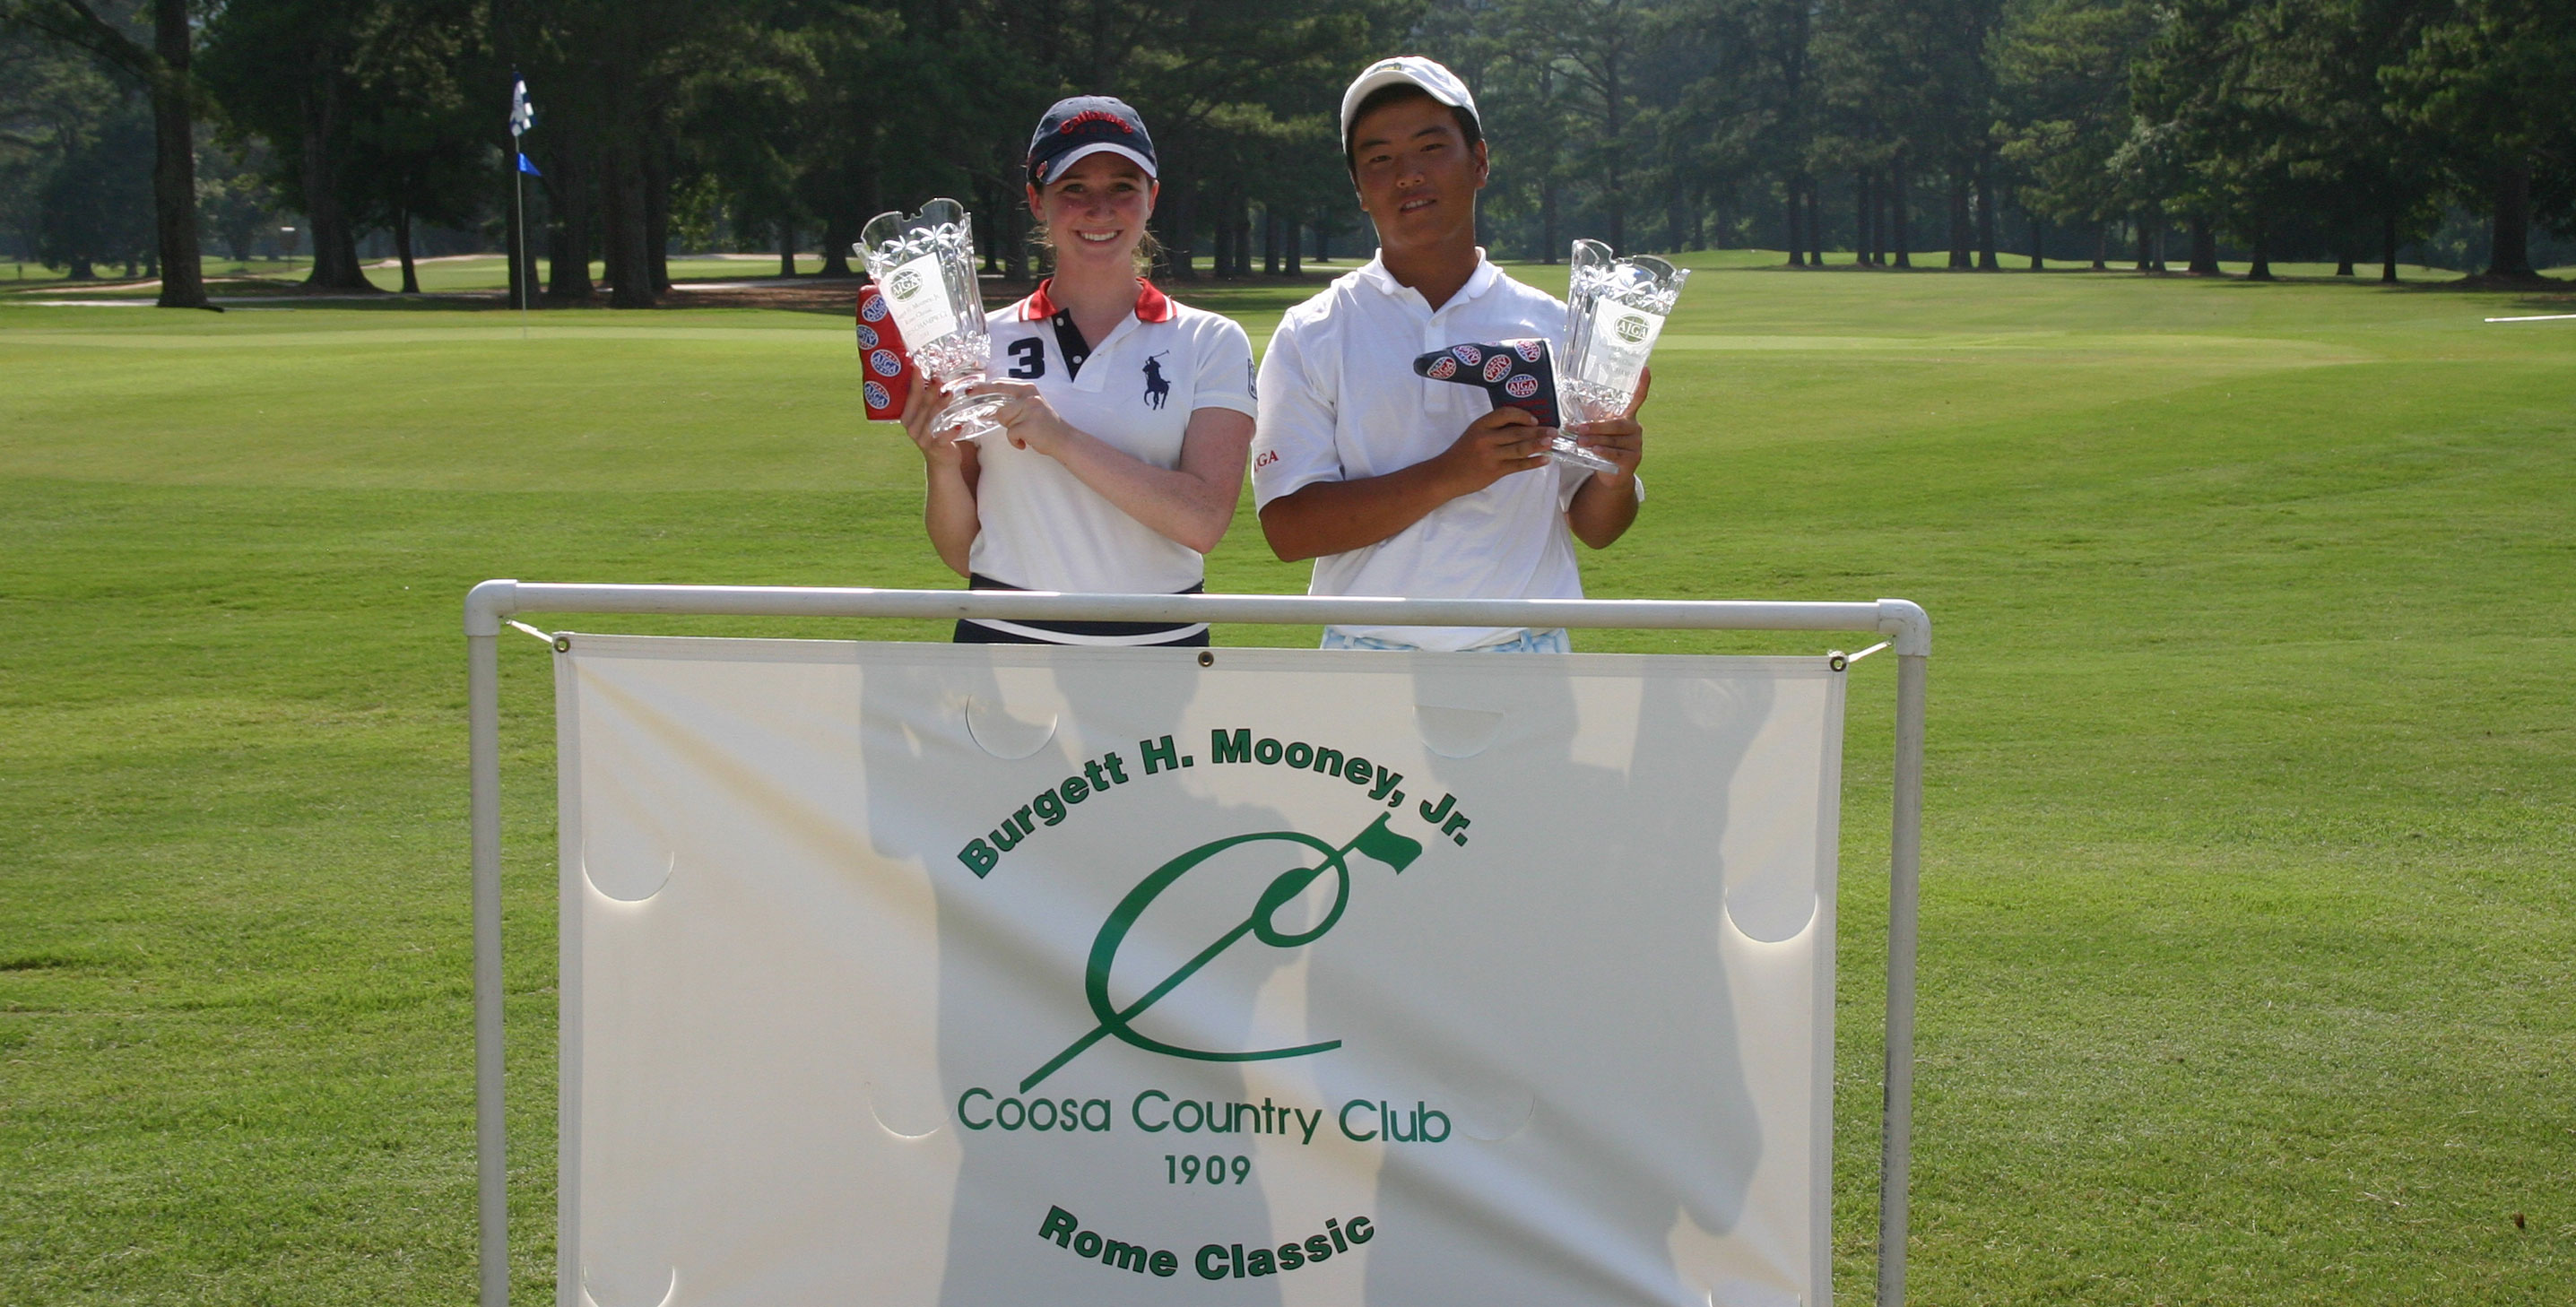 Shim and Kay win title at Burgett H. Mooney, Jr. Rome Classic